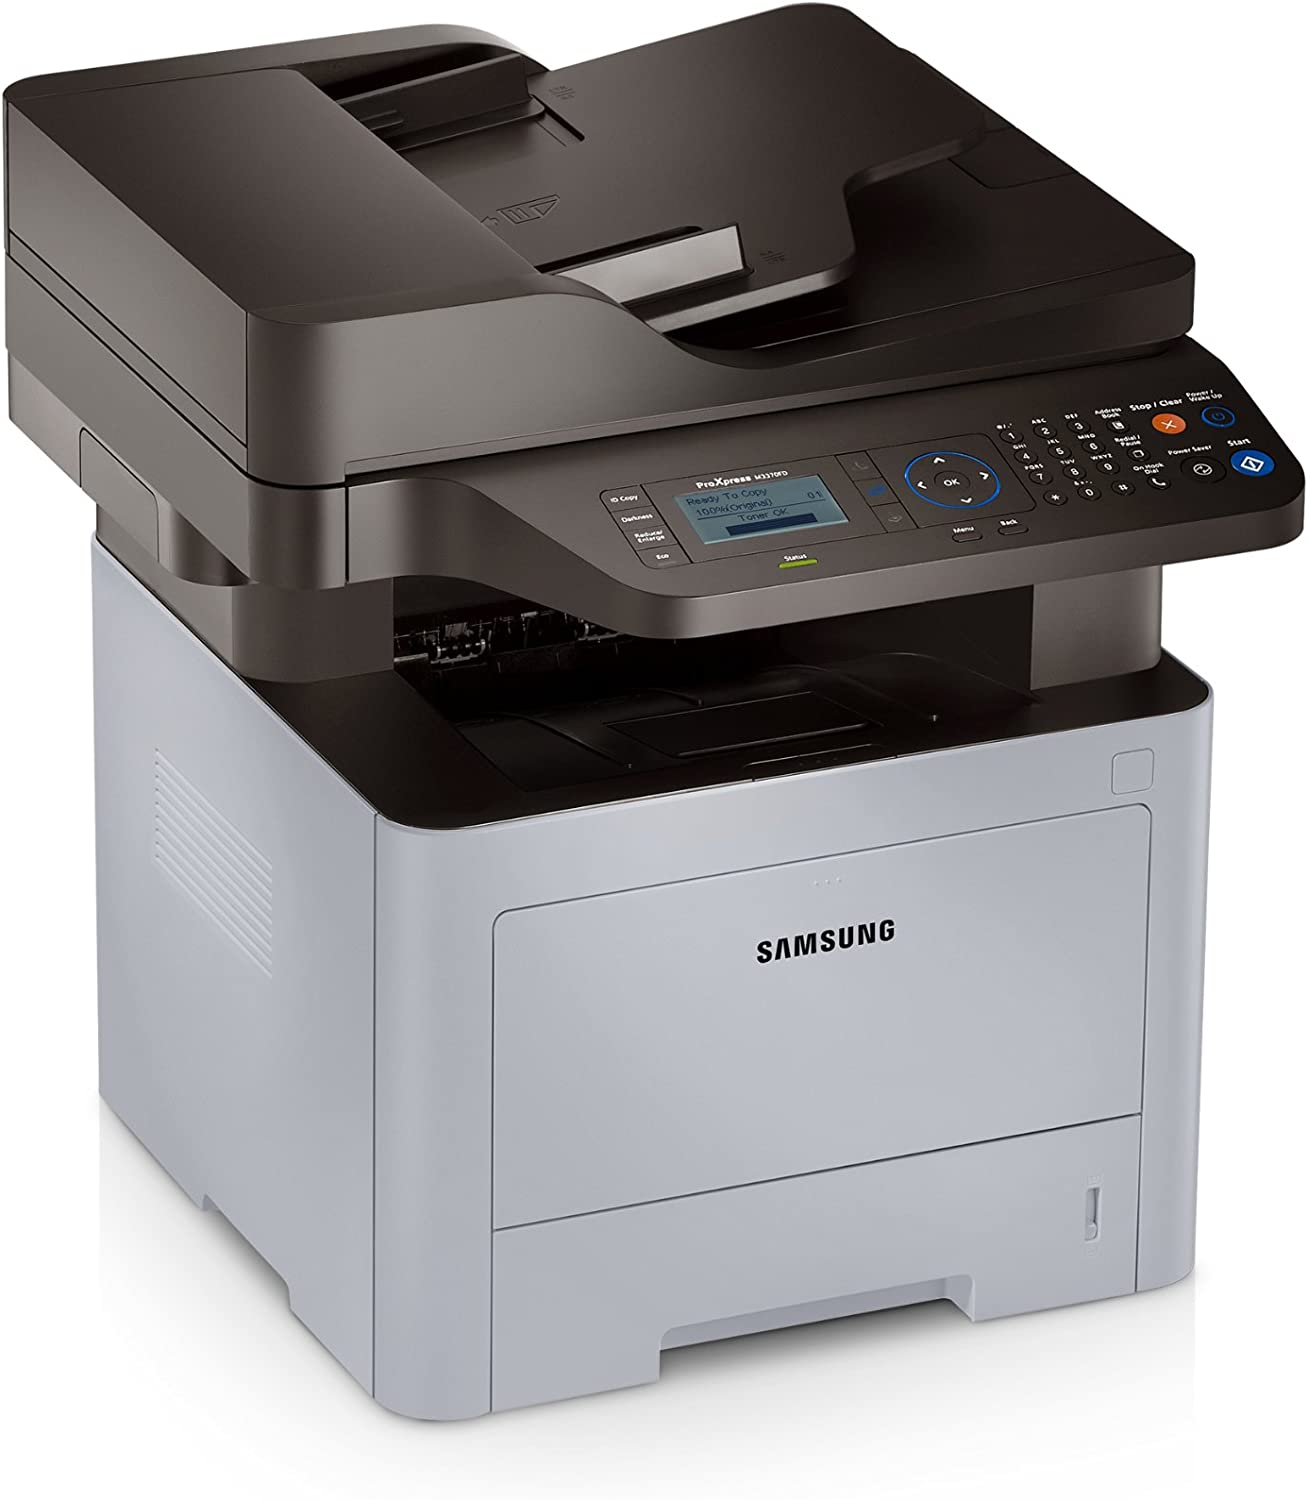 Samsung Multifunction ProXpress SL-M3370FD Monochrome Printer with Scanner, Copier and Fax